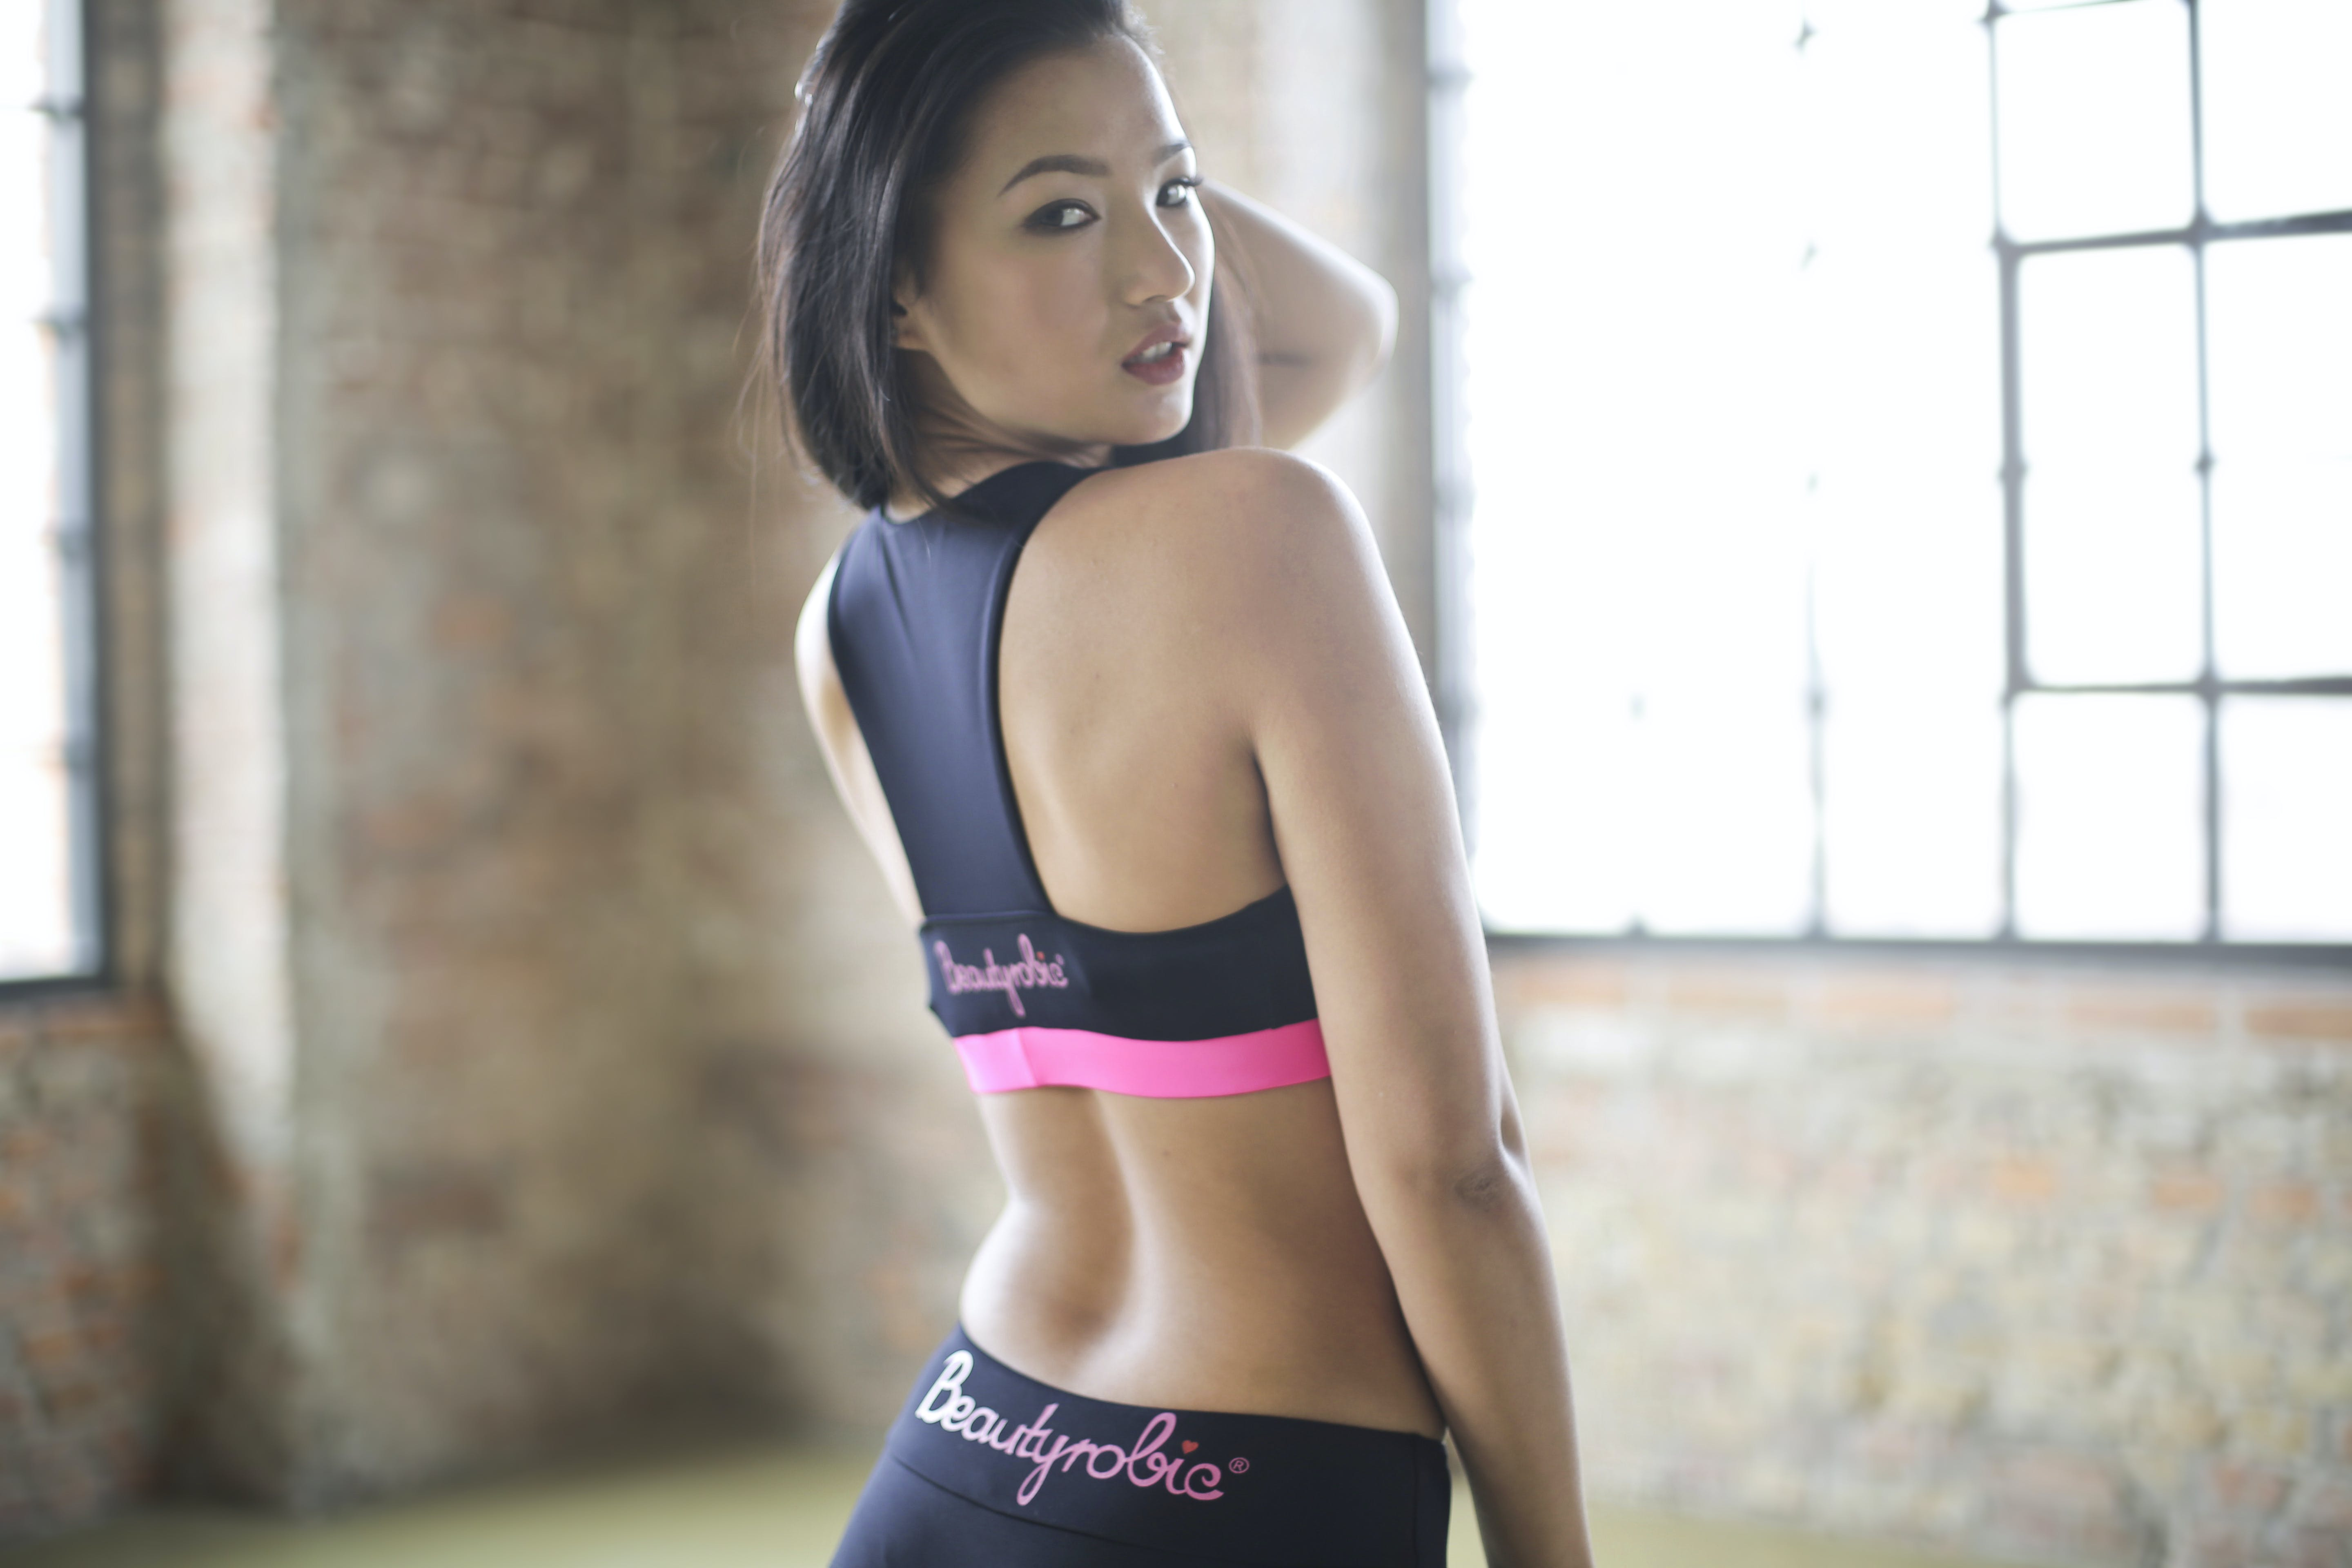 Woman in Black and Pink Sports Bra